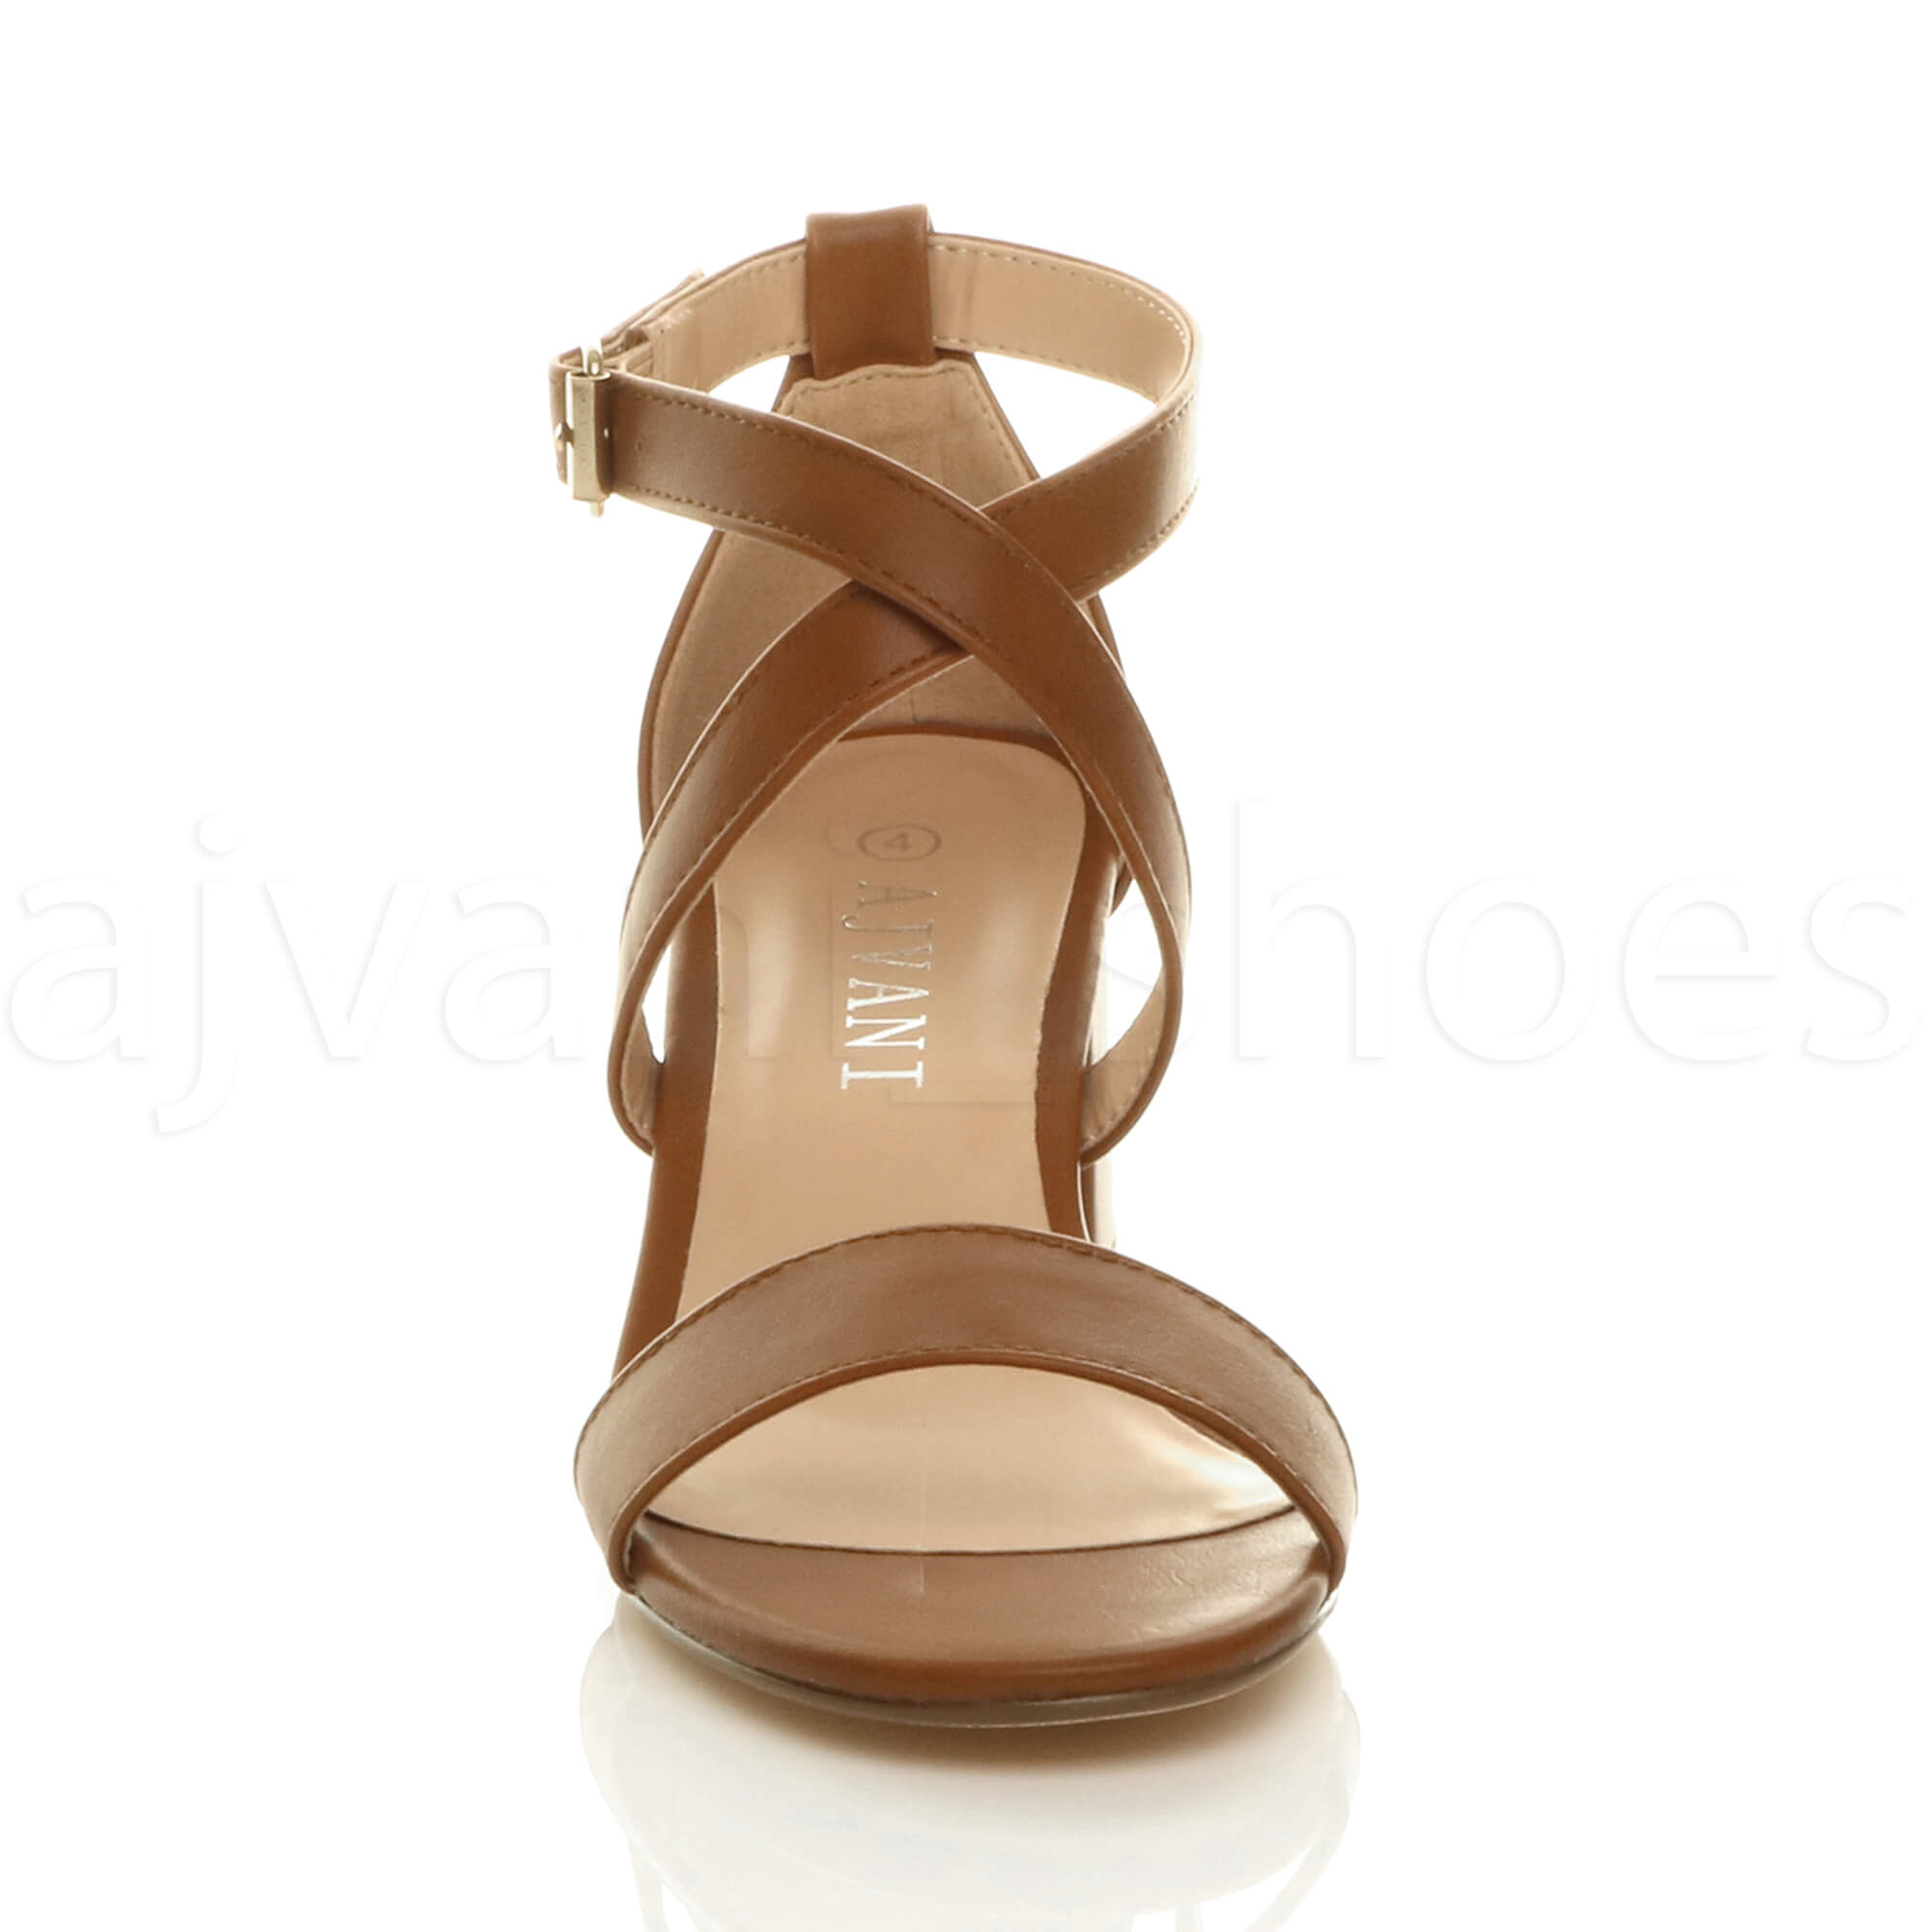 WOMENS-LADIES-MID-LOW-BLOCK-HEEL-CROSS-STRAPS-PARTY-STRAPPY-SANDALS-SHOES-SIZE thumbnail 94